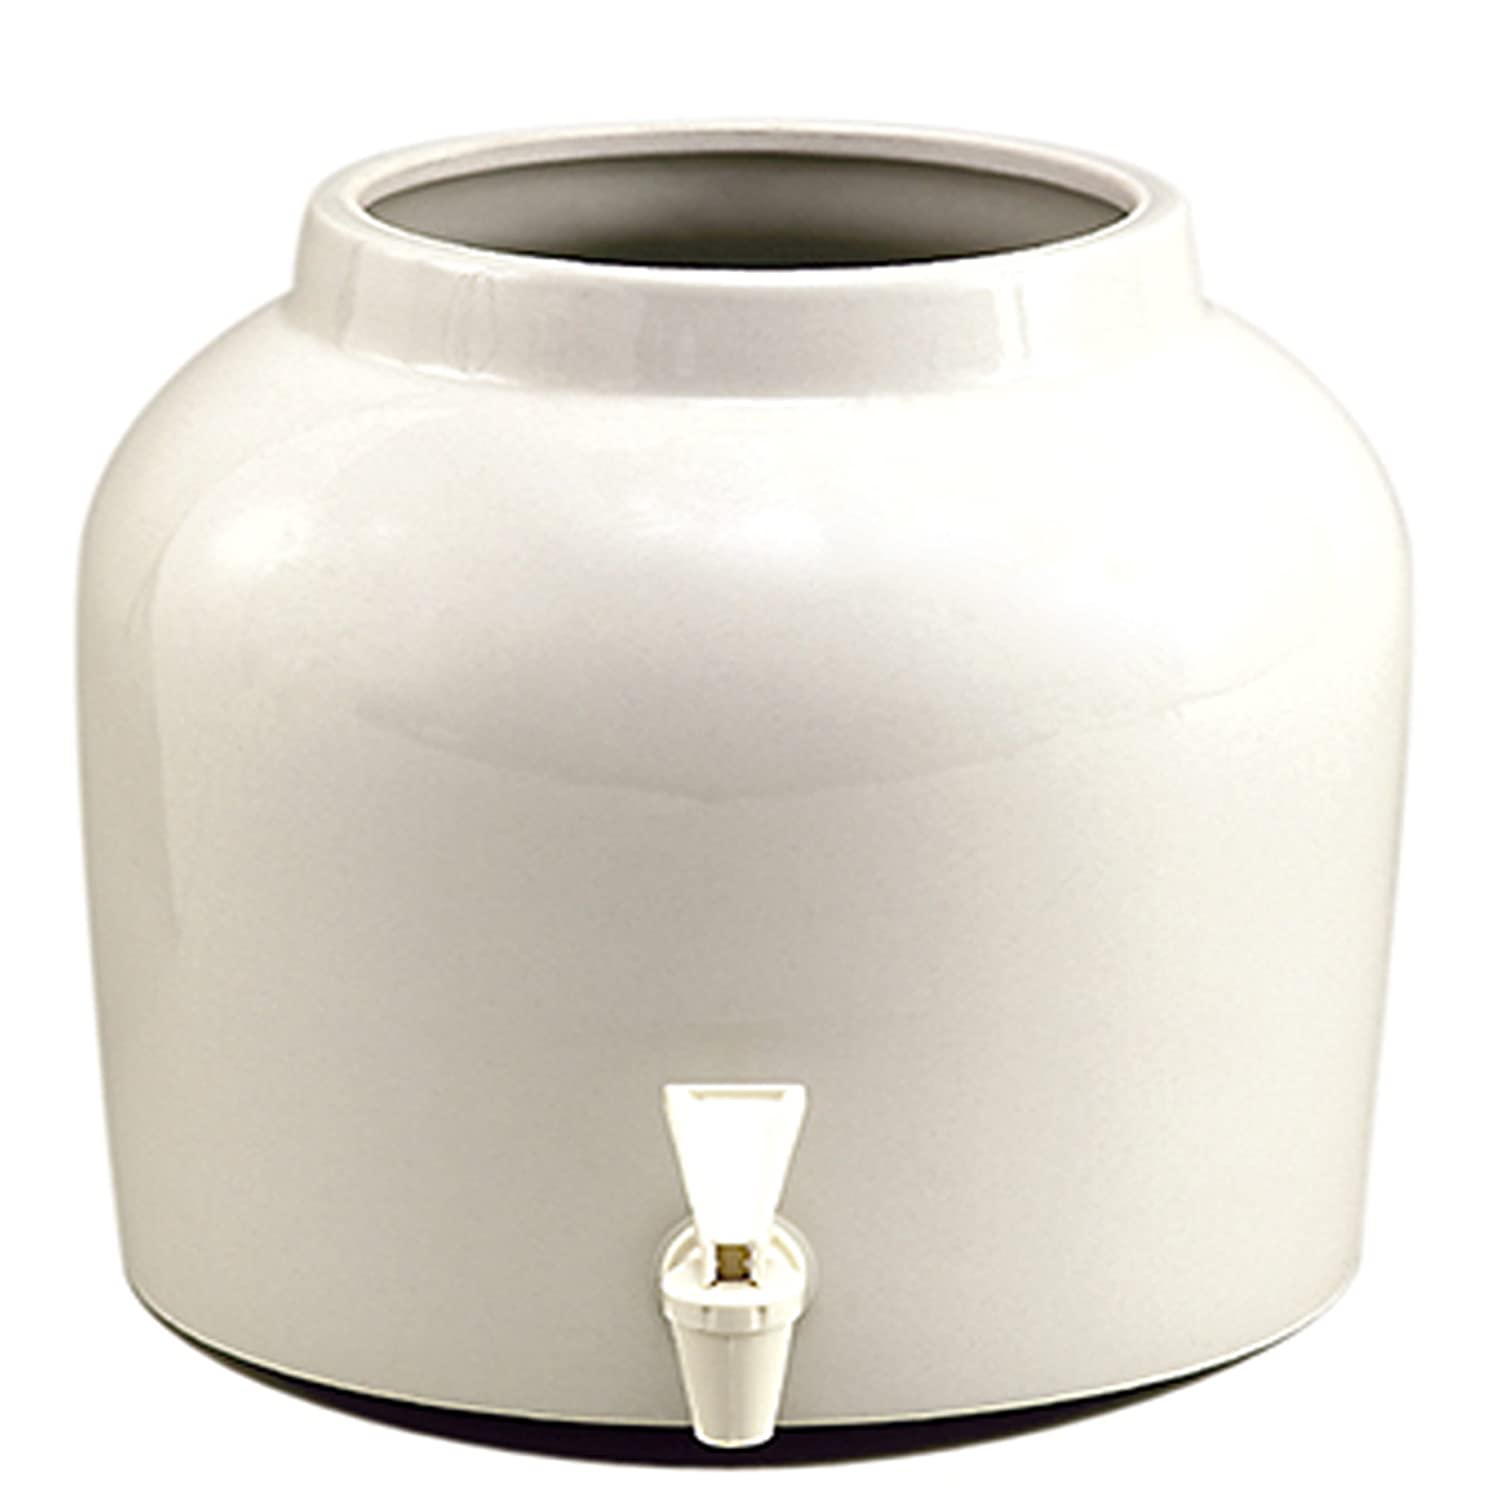 New Wave Enviro Porcelain Water Dispenser